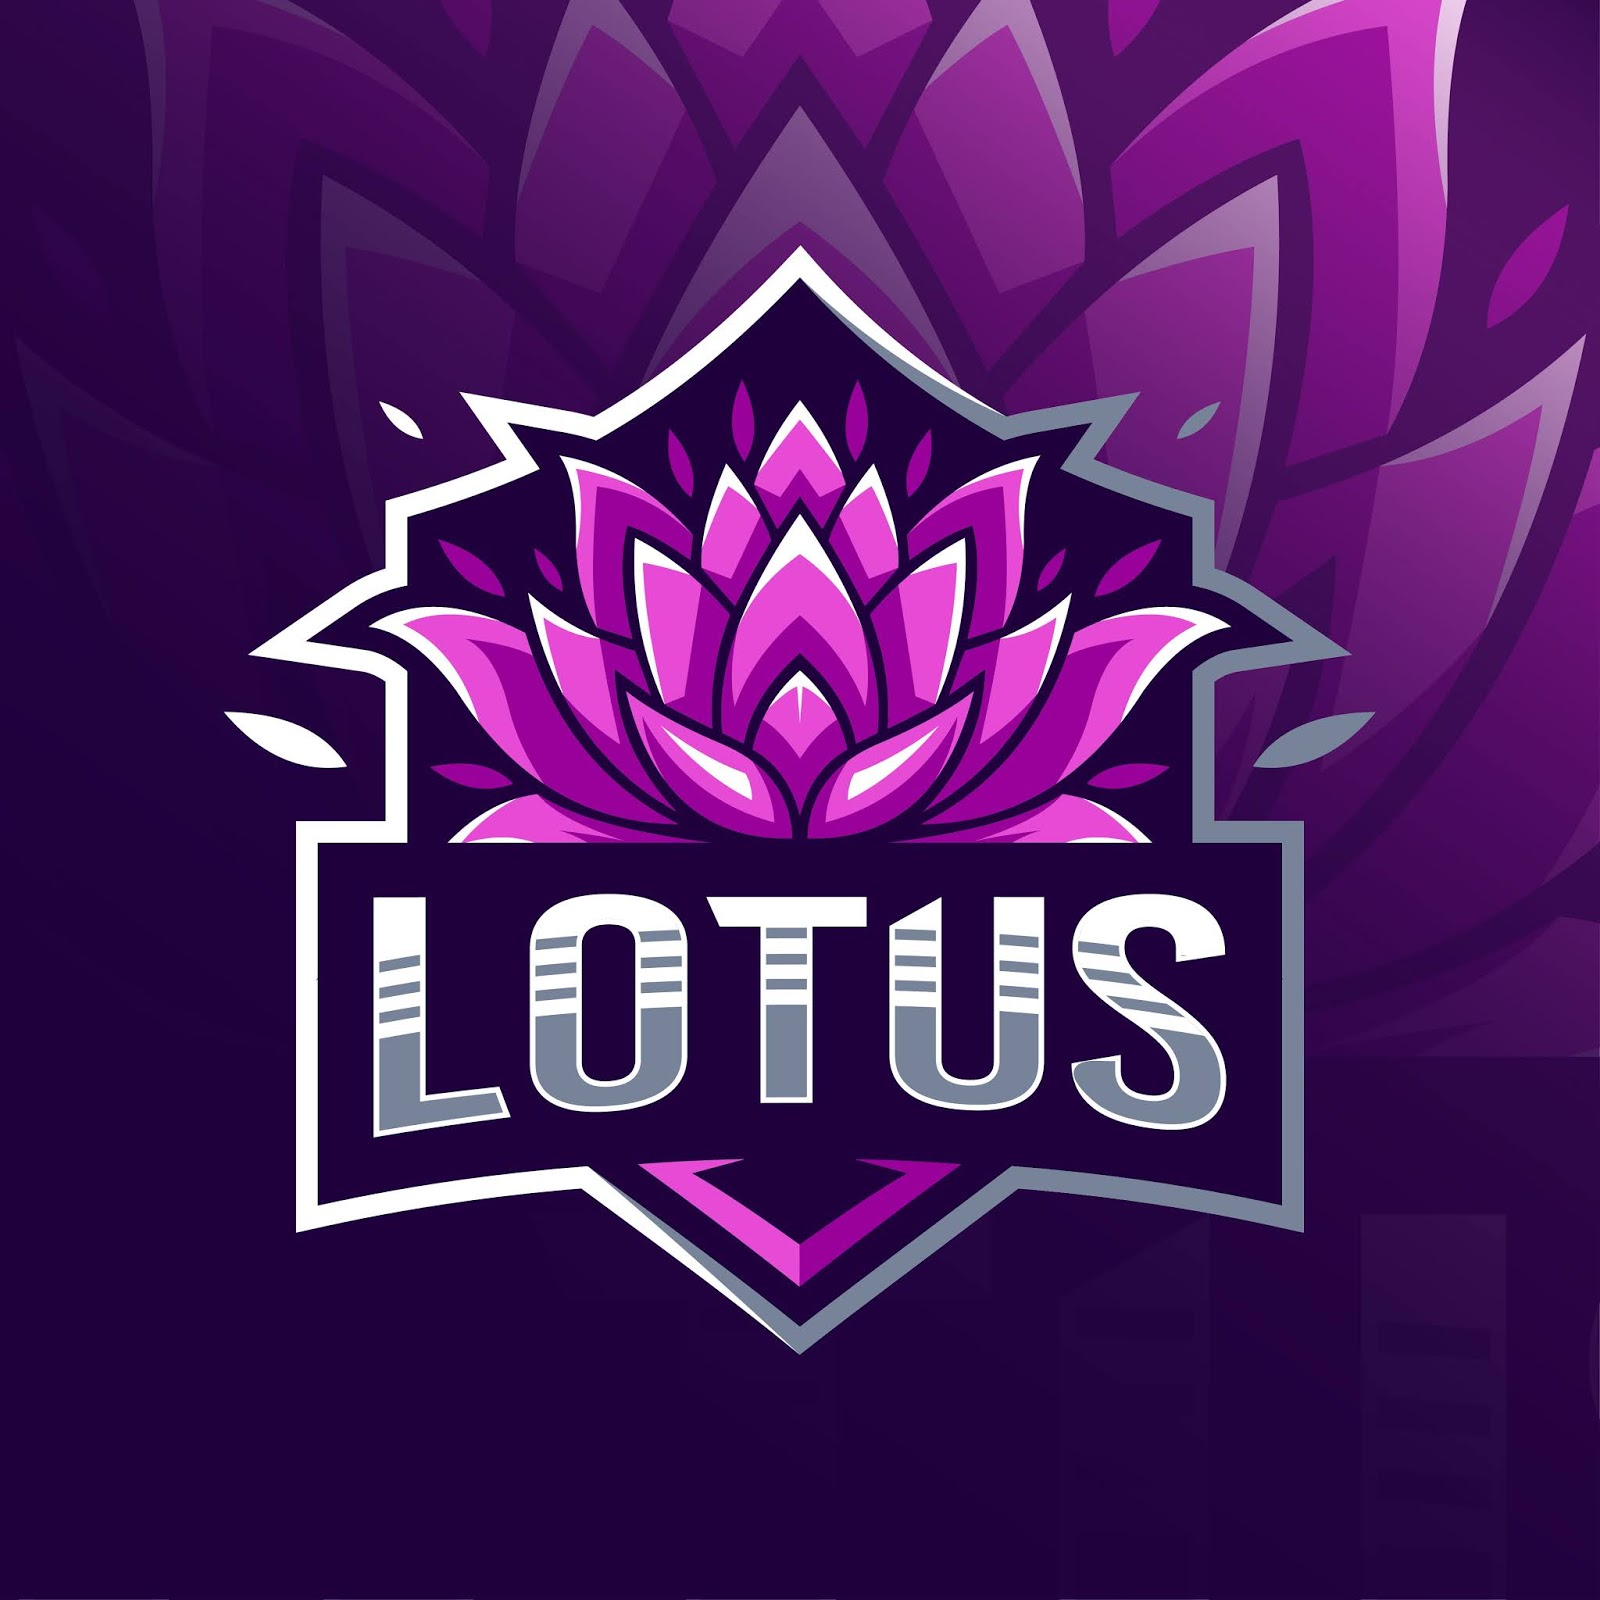 Lotus Logo Esport Free Download Vector CDR, AI, EPS and PNG Formats